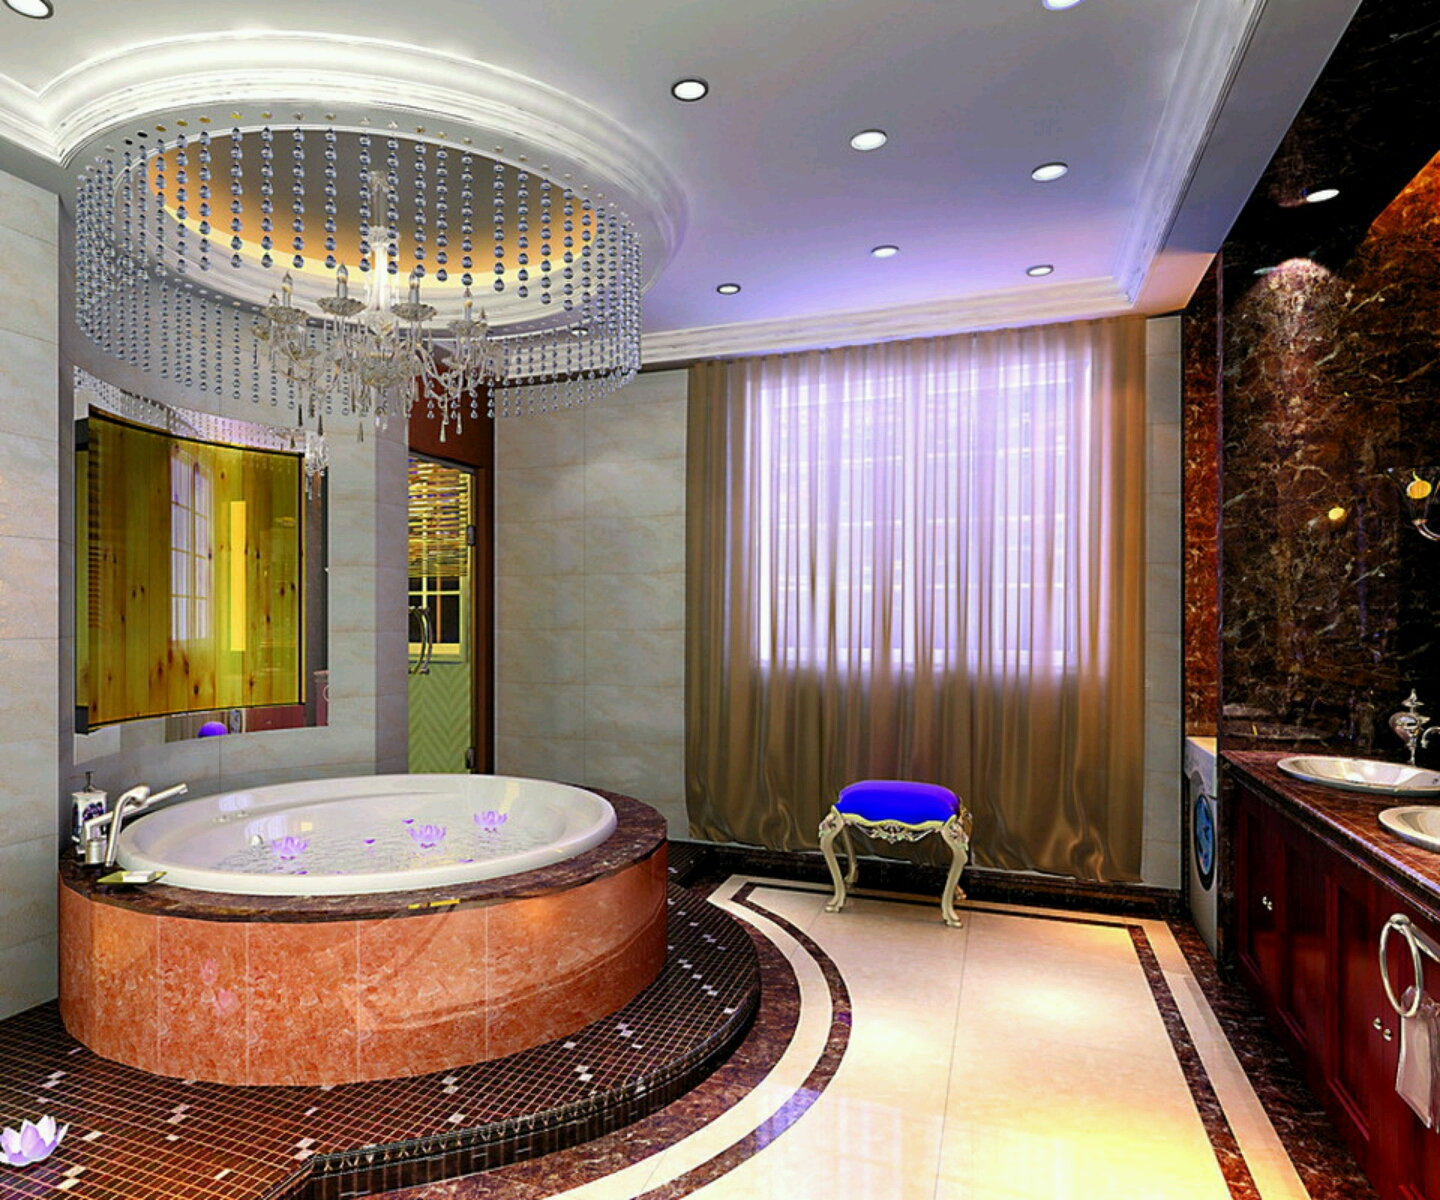 Luxury bathrooms designs ideas new home designs for Luxury toilet design